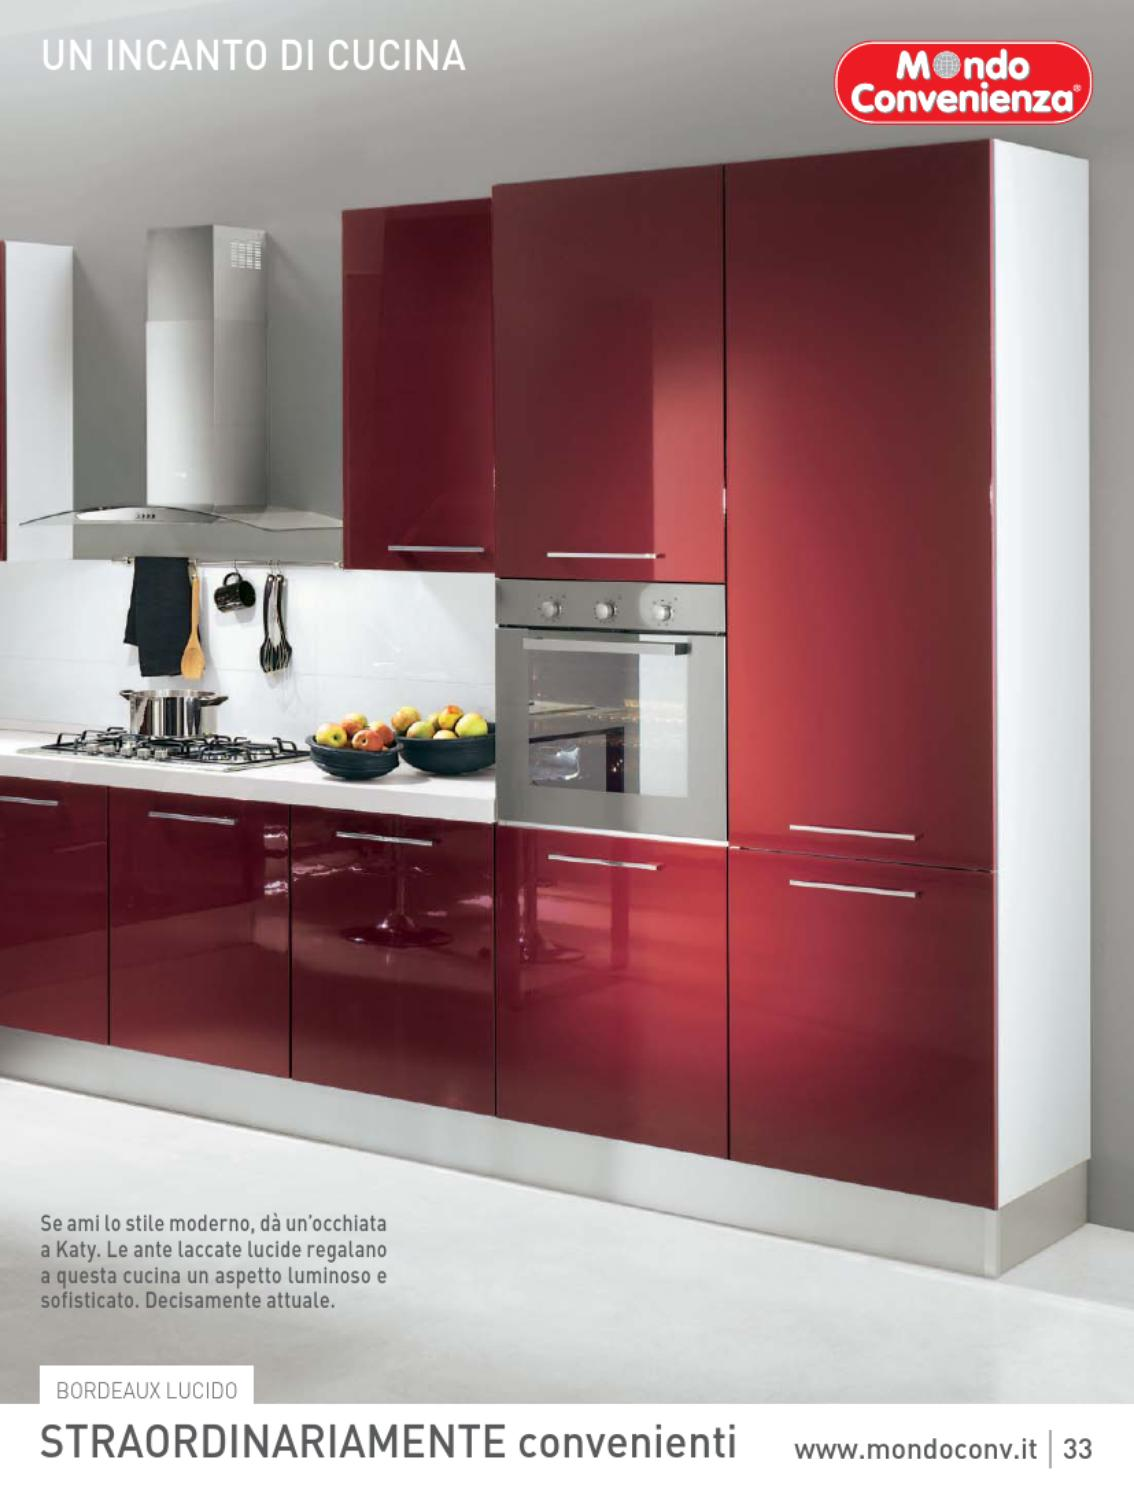 Mondo convenienza catalogo cucine 2013 by for Cucina like mondo convenienza